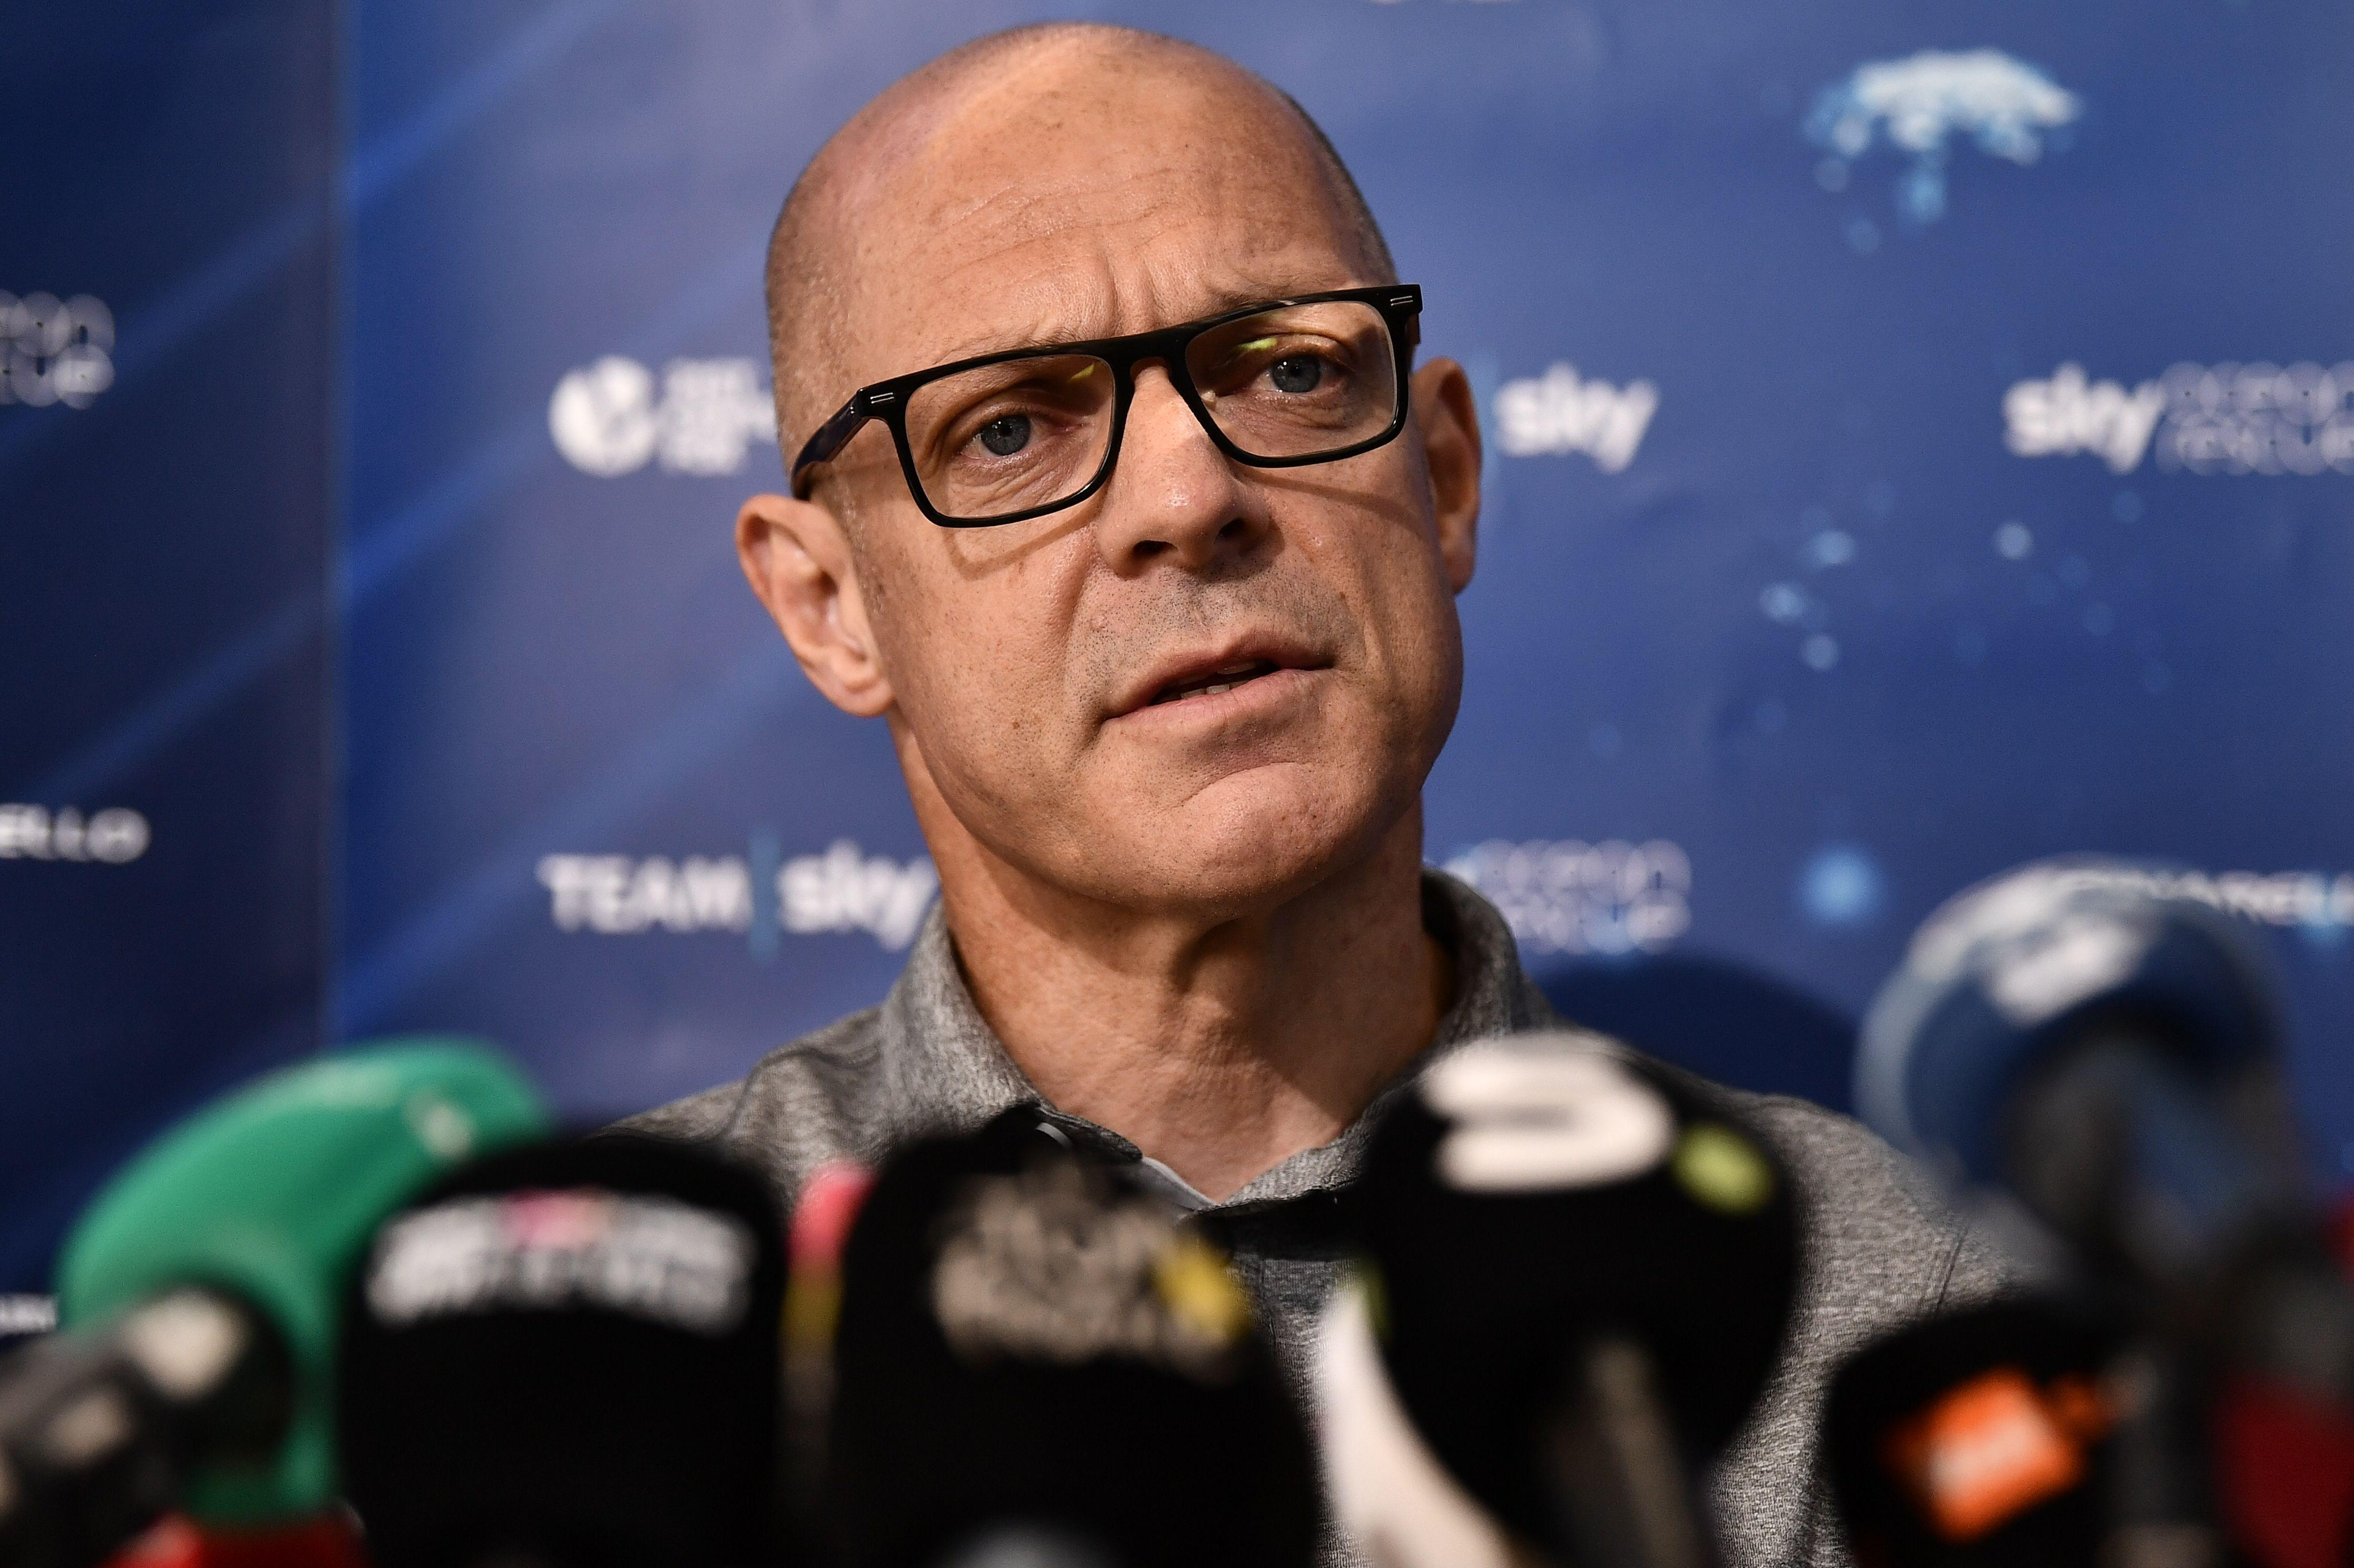 Sir Dave Brailsford will need to look for another title sponsor for his team